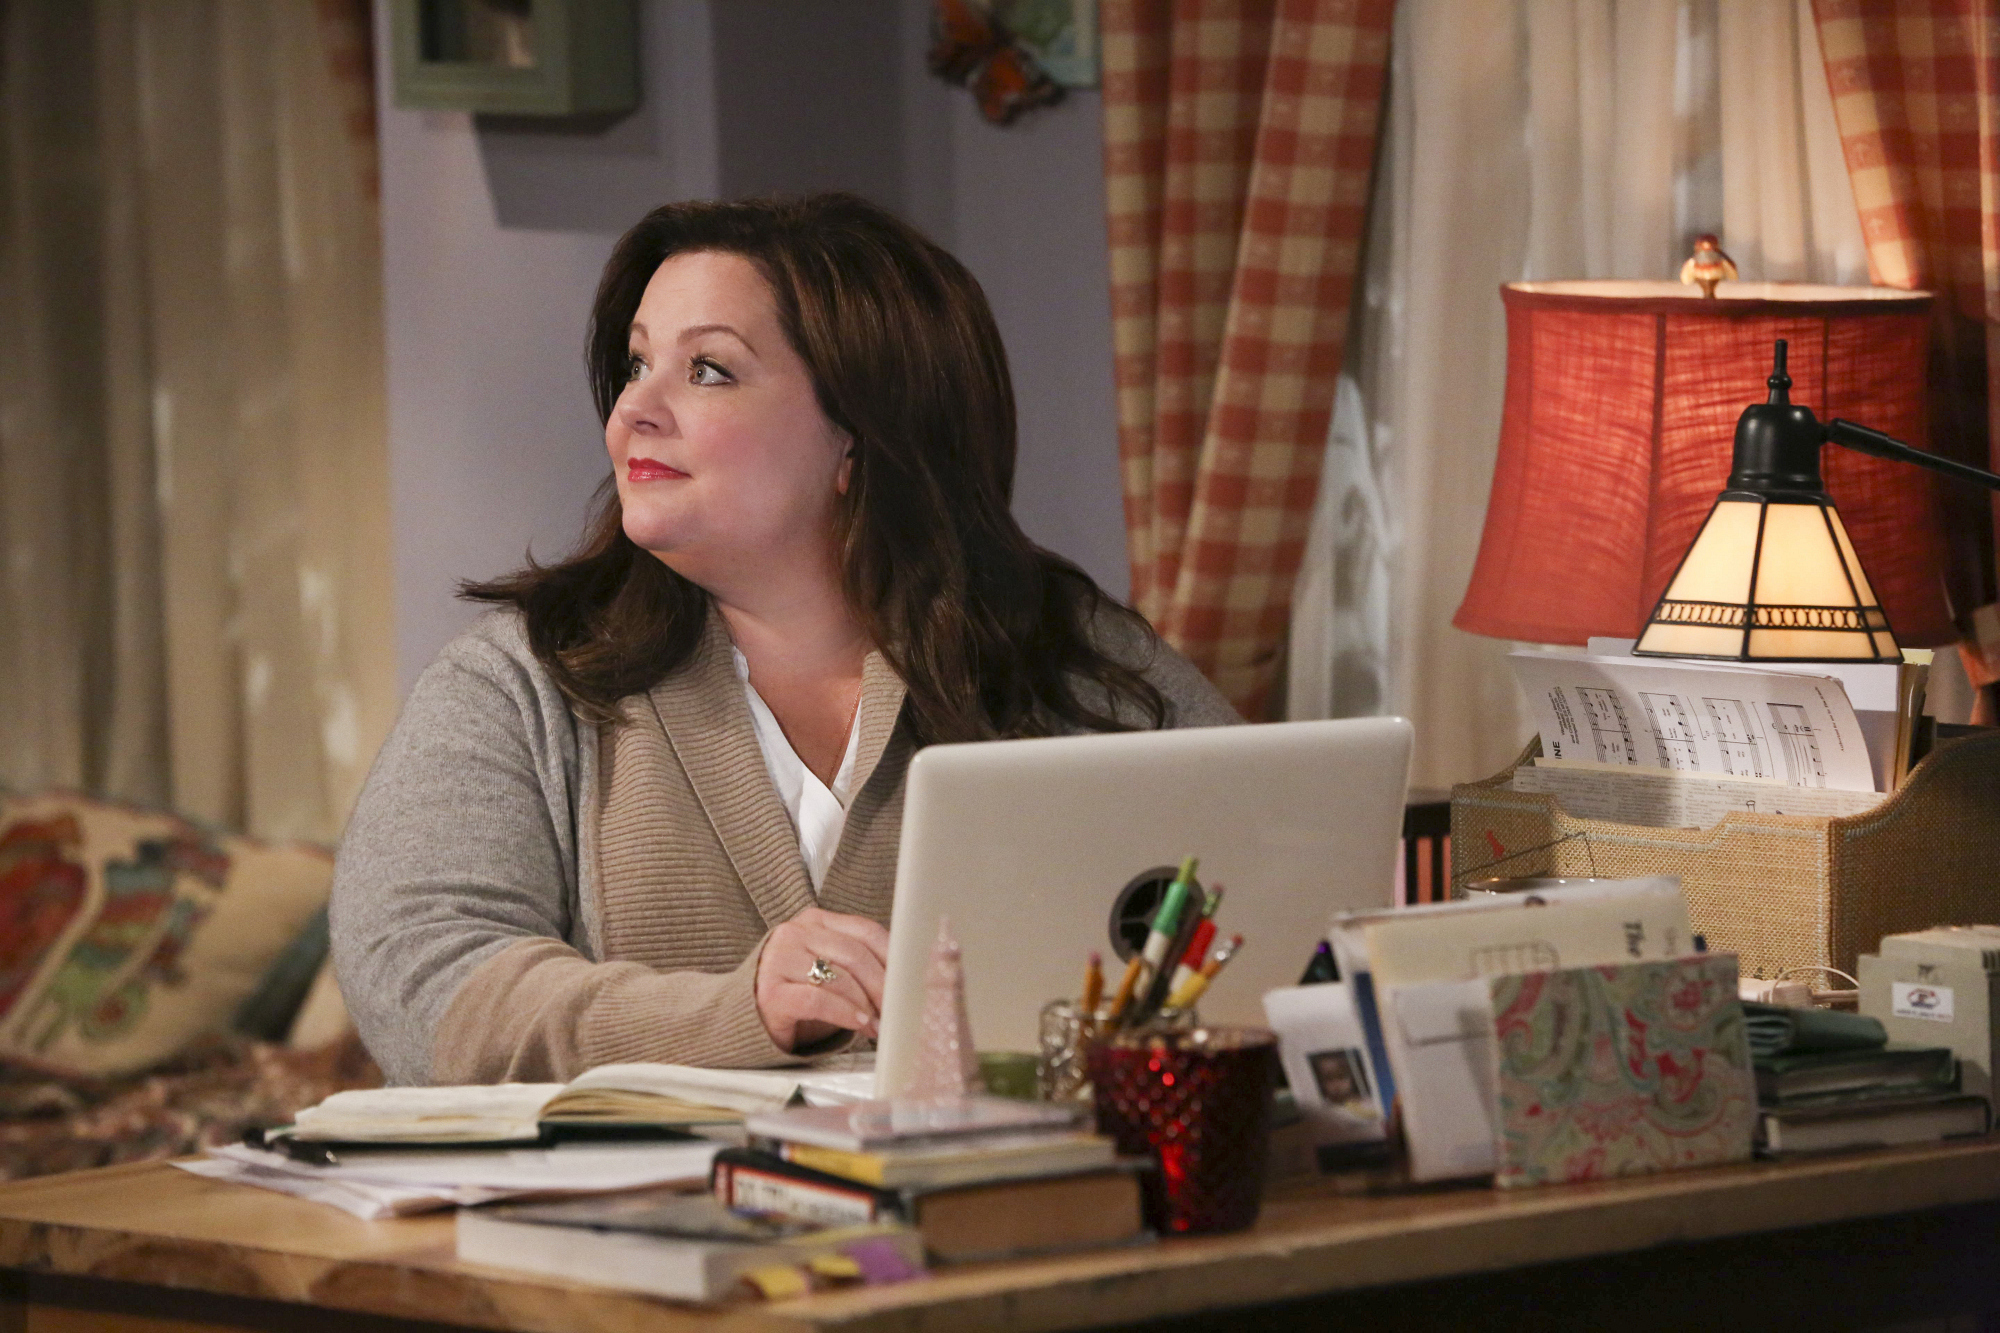 """Hard at work in """"Open Mike Night"""" S4 E13"""